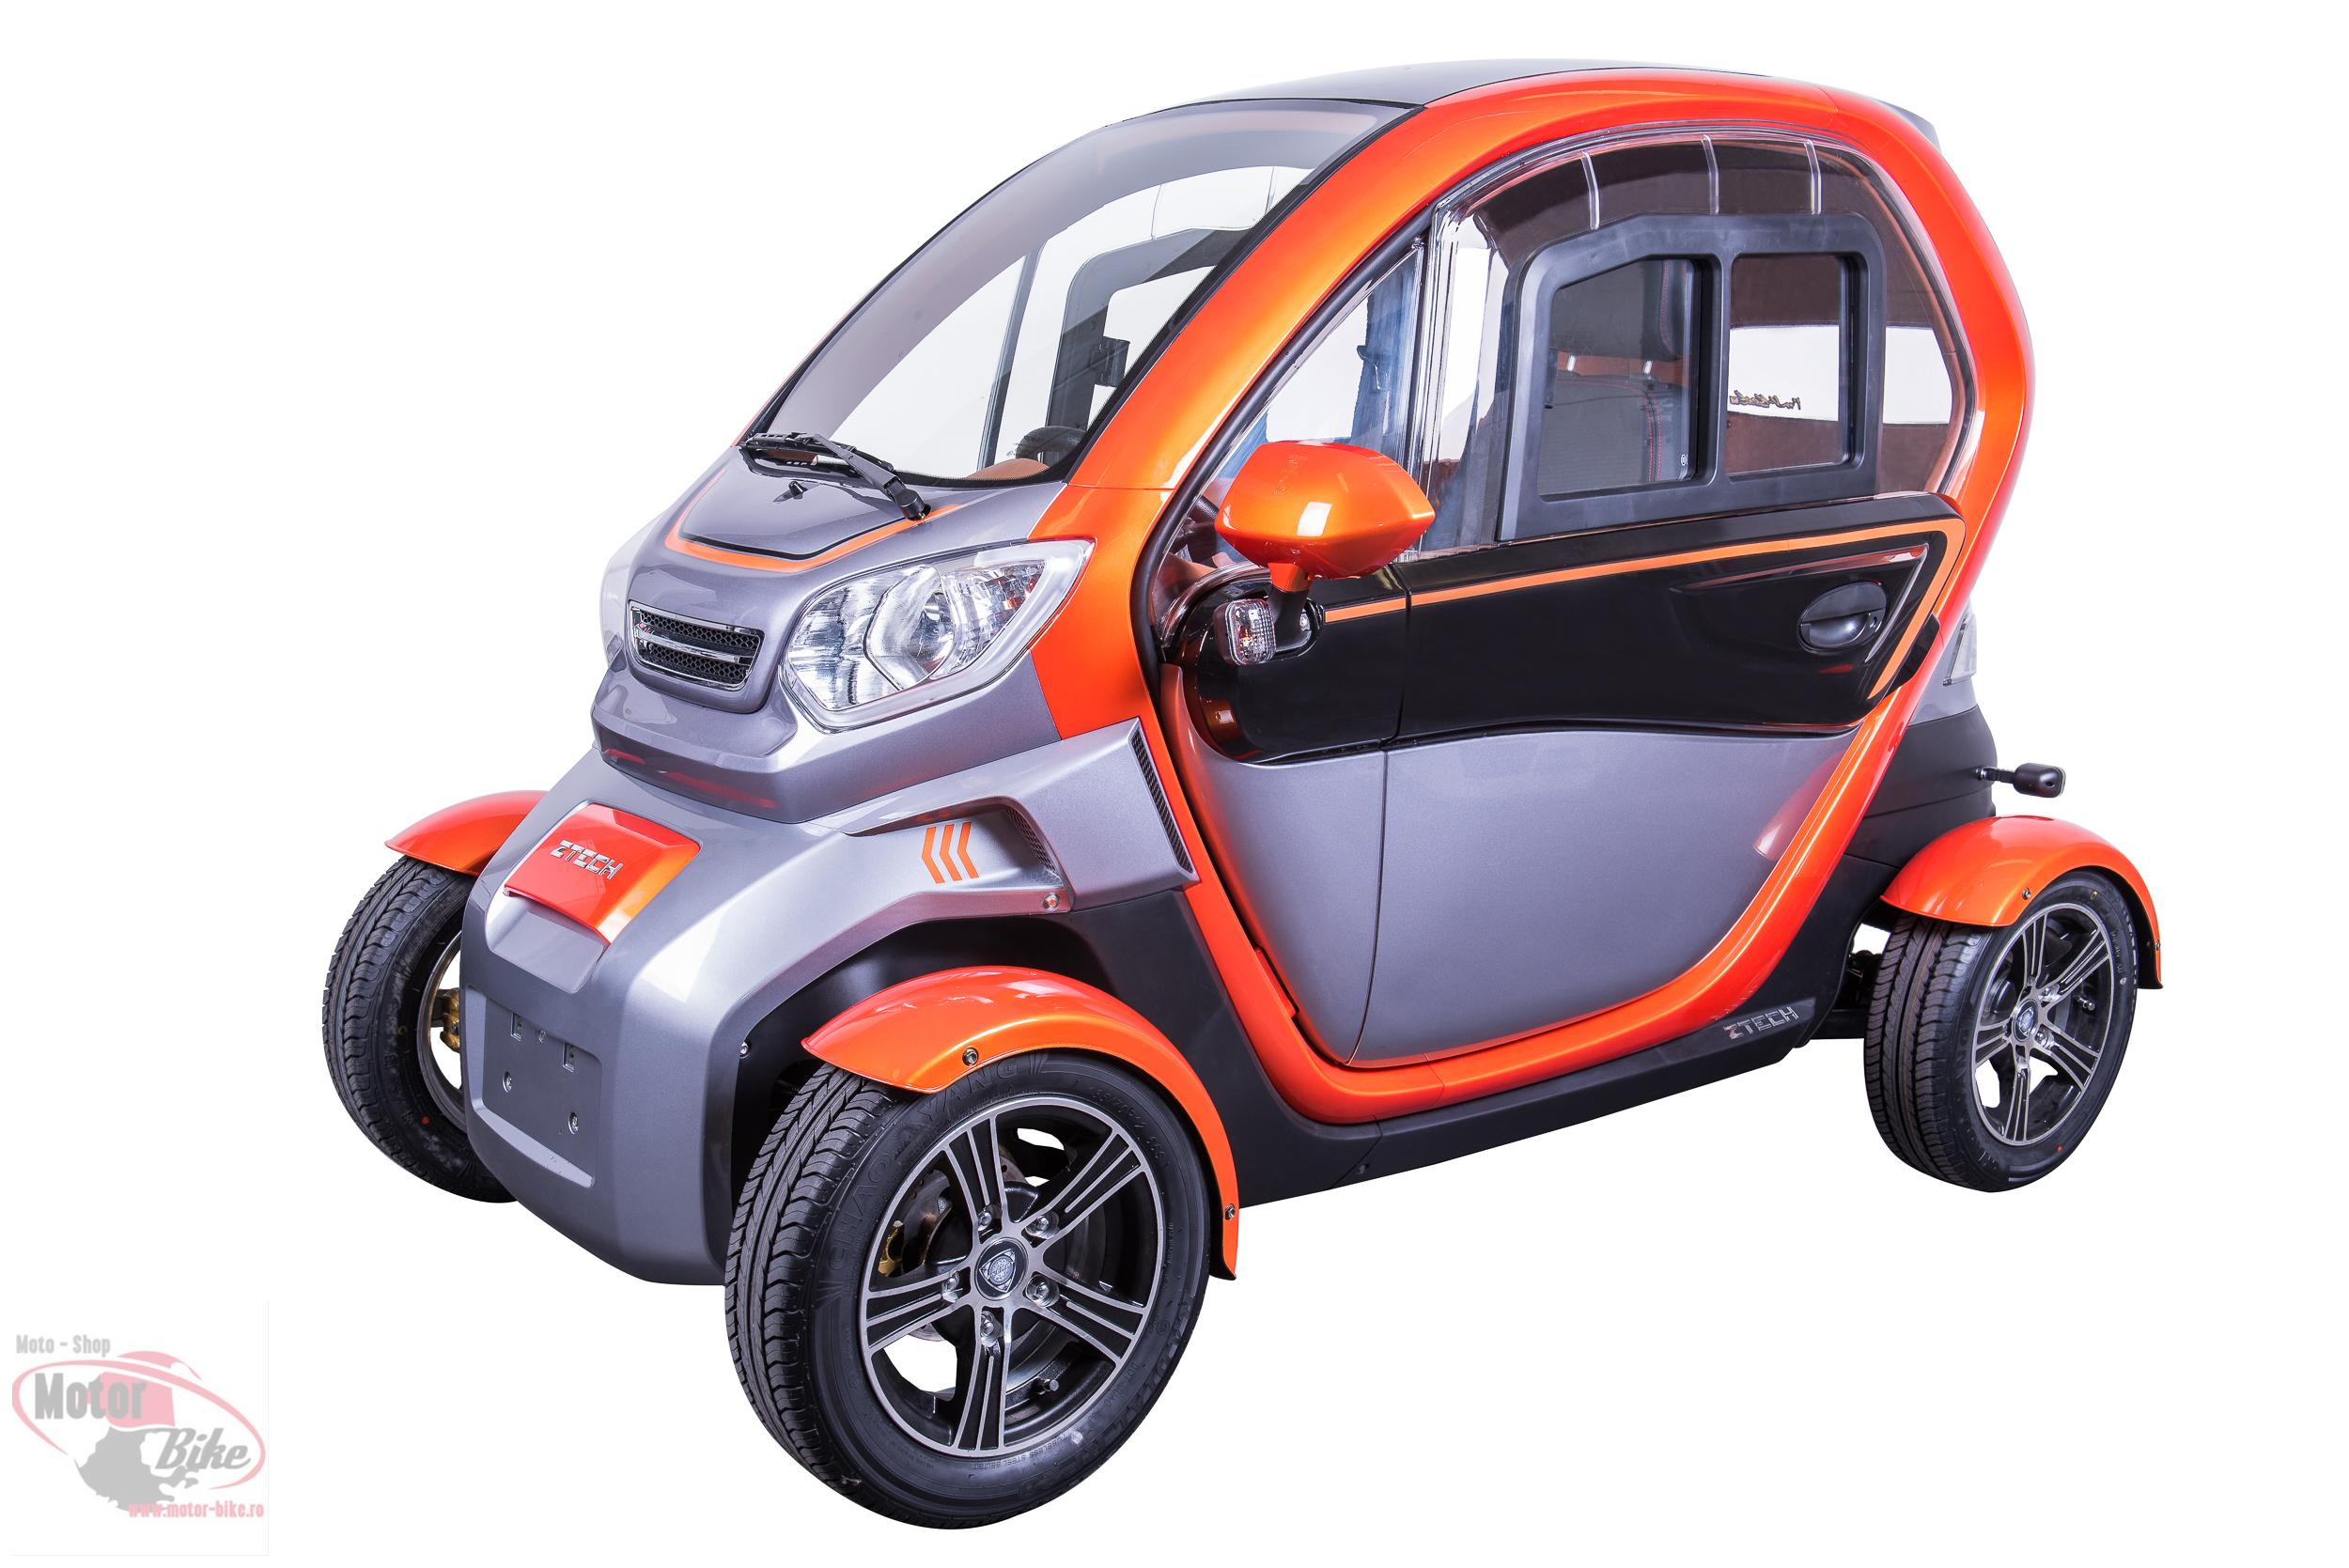 MOPED CAR Electrica ZT96 ORANGE 4 roti